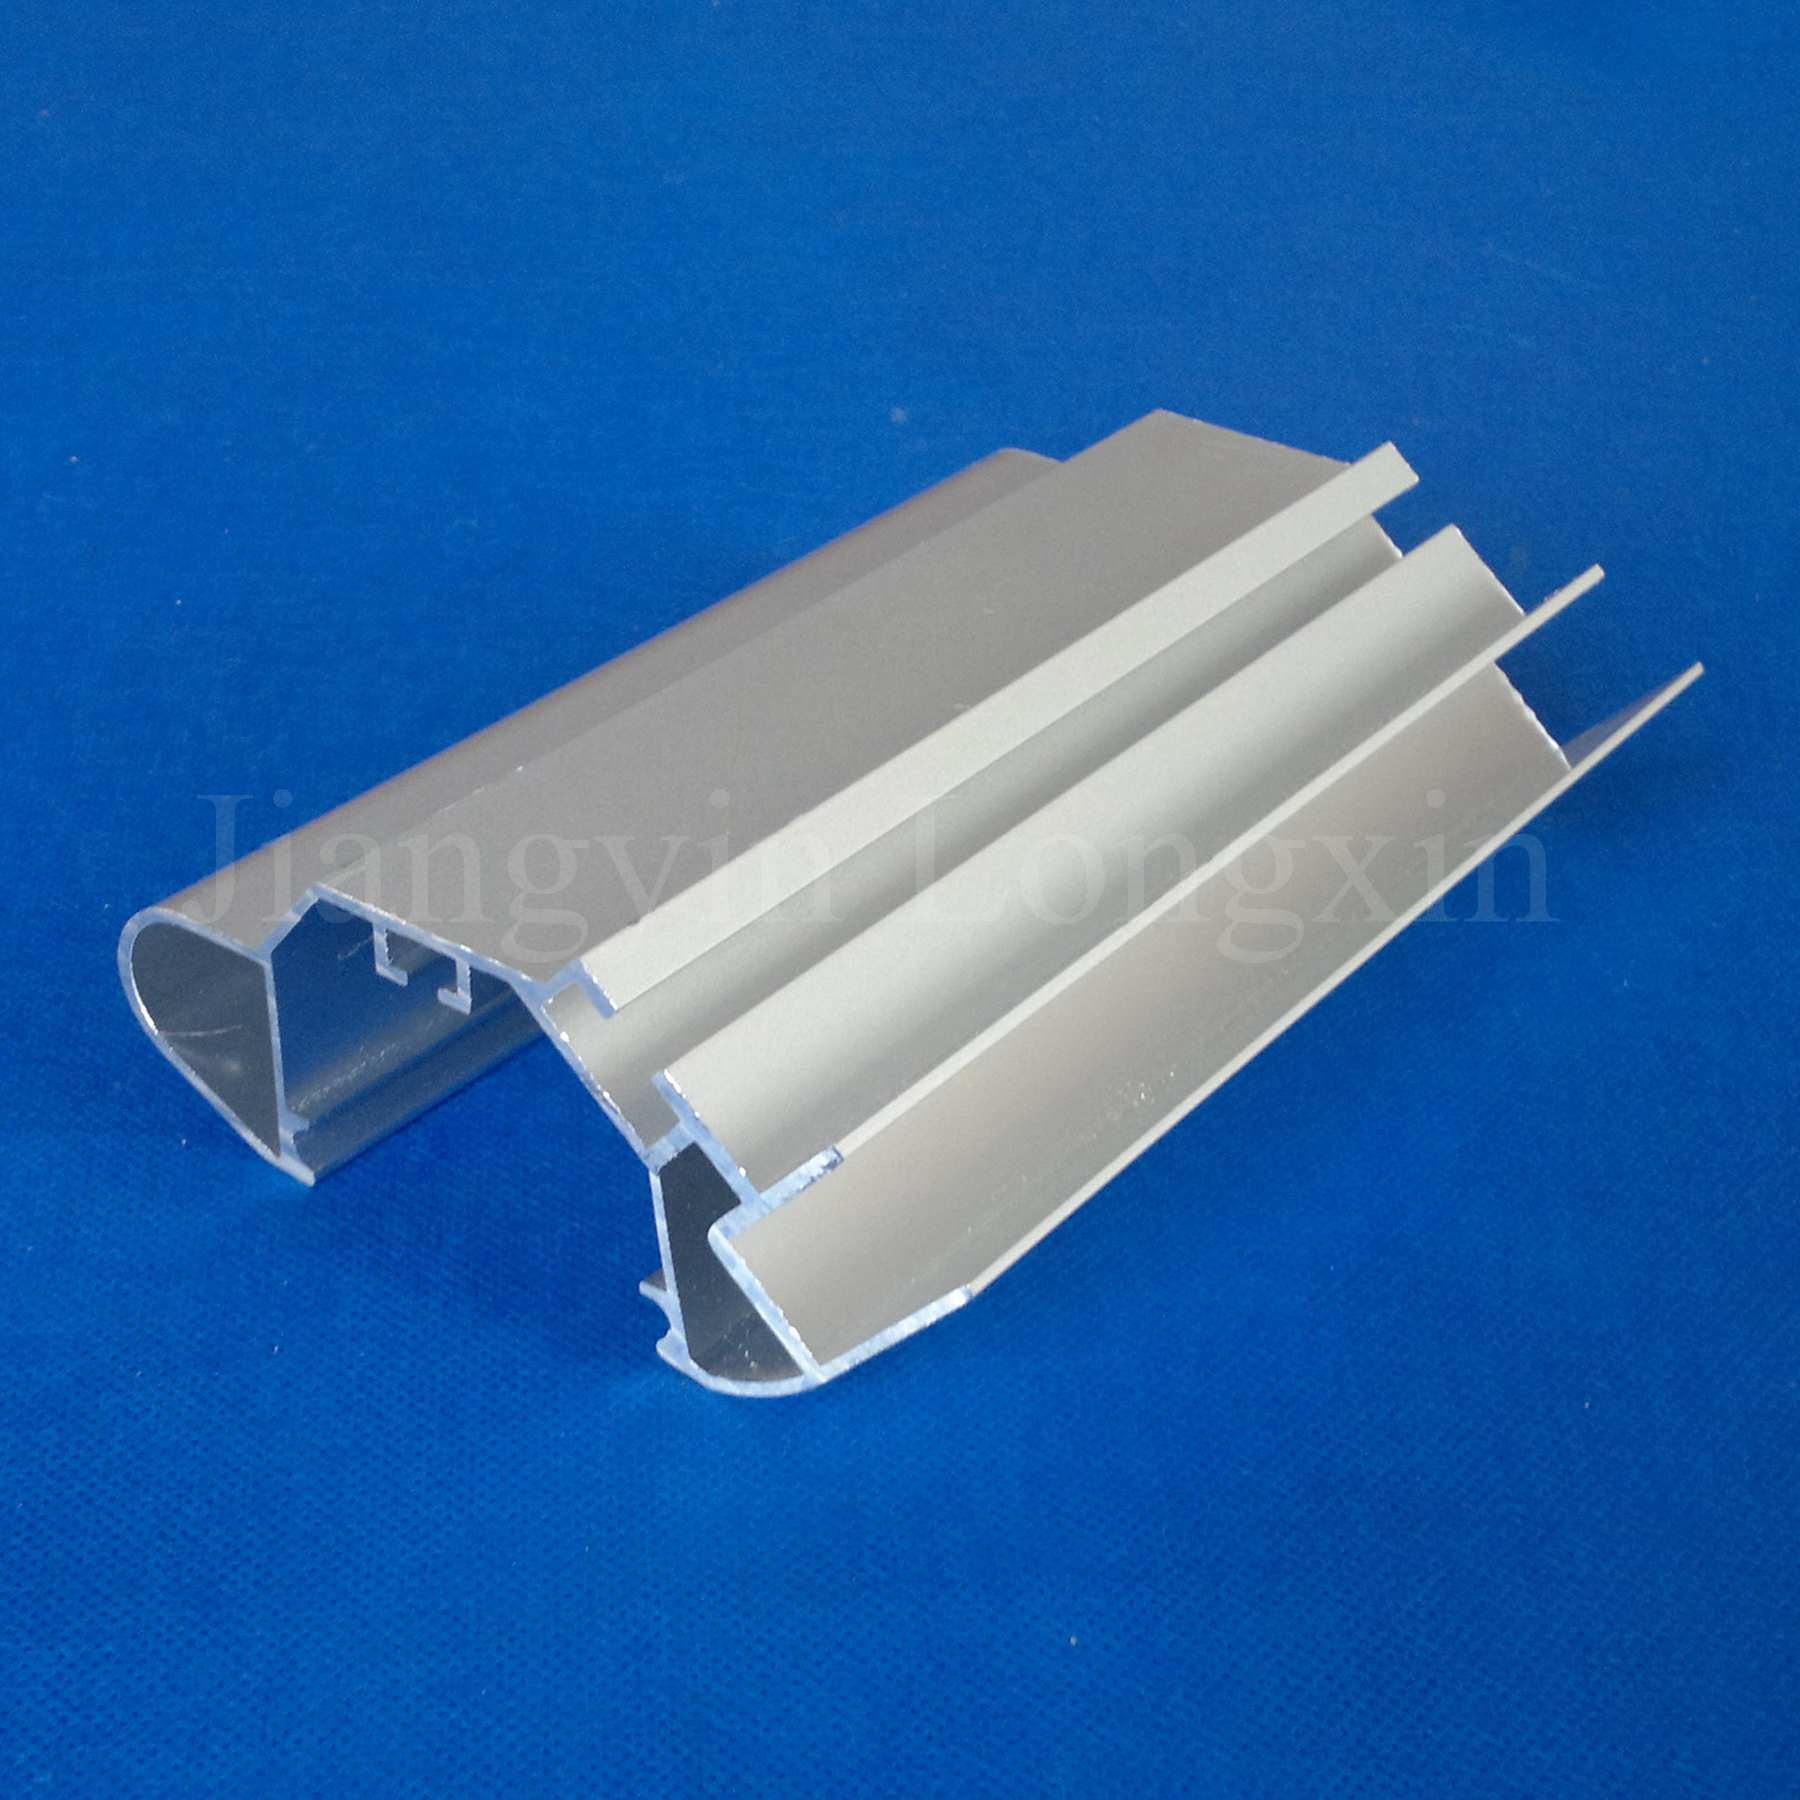 Silver Anodized Aluminium Profile for Industrial